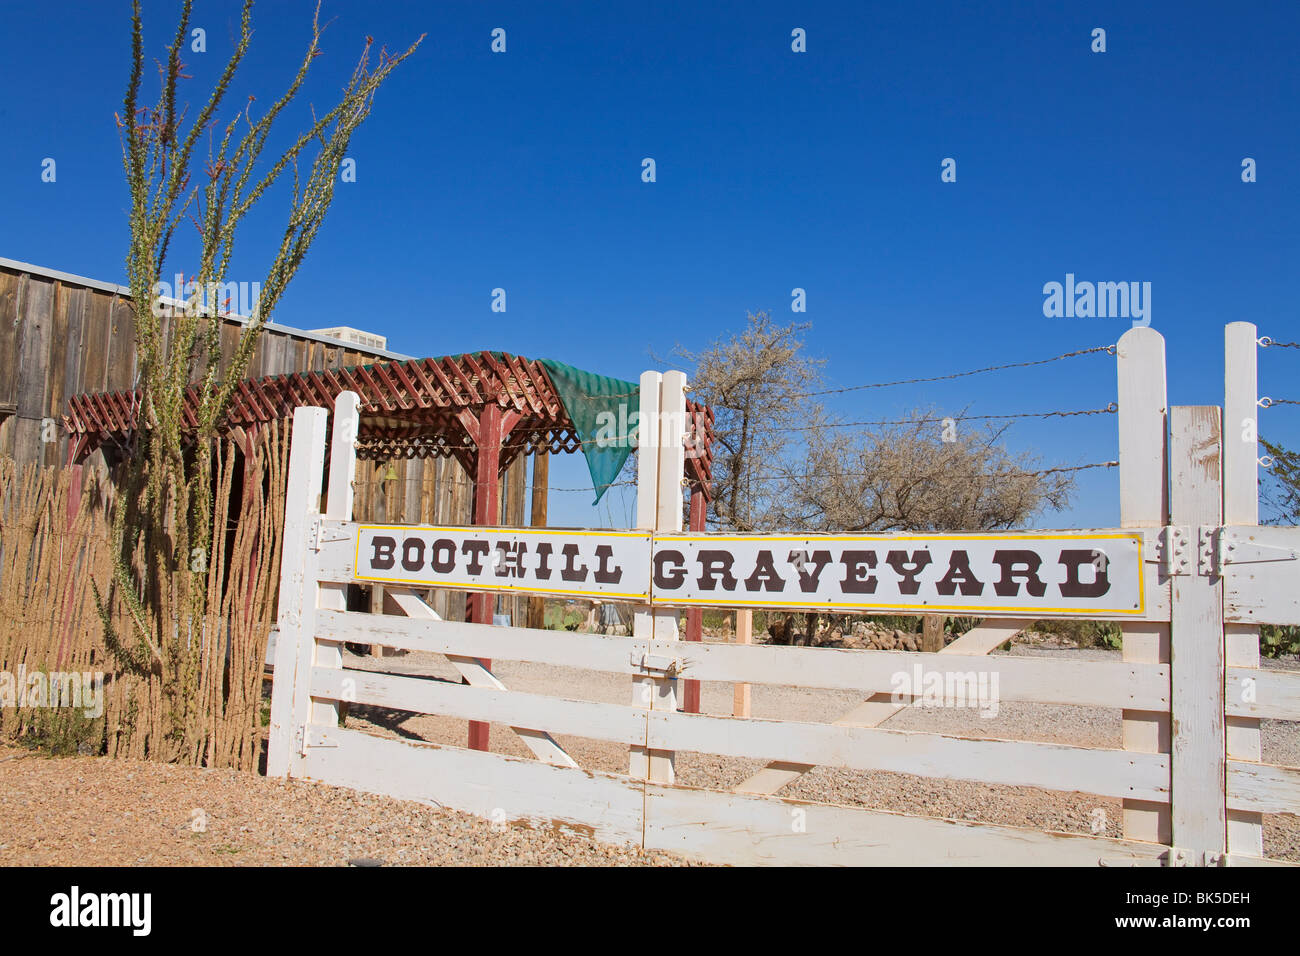 Boothill Graveyard Gate, Tombstone, Cochise County, Arizona, United States of America, North America - Stock Image